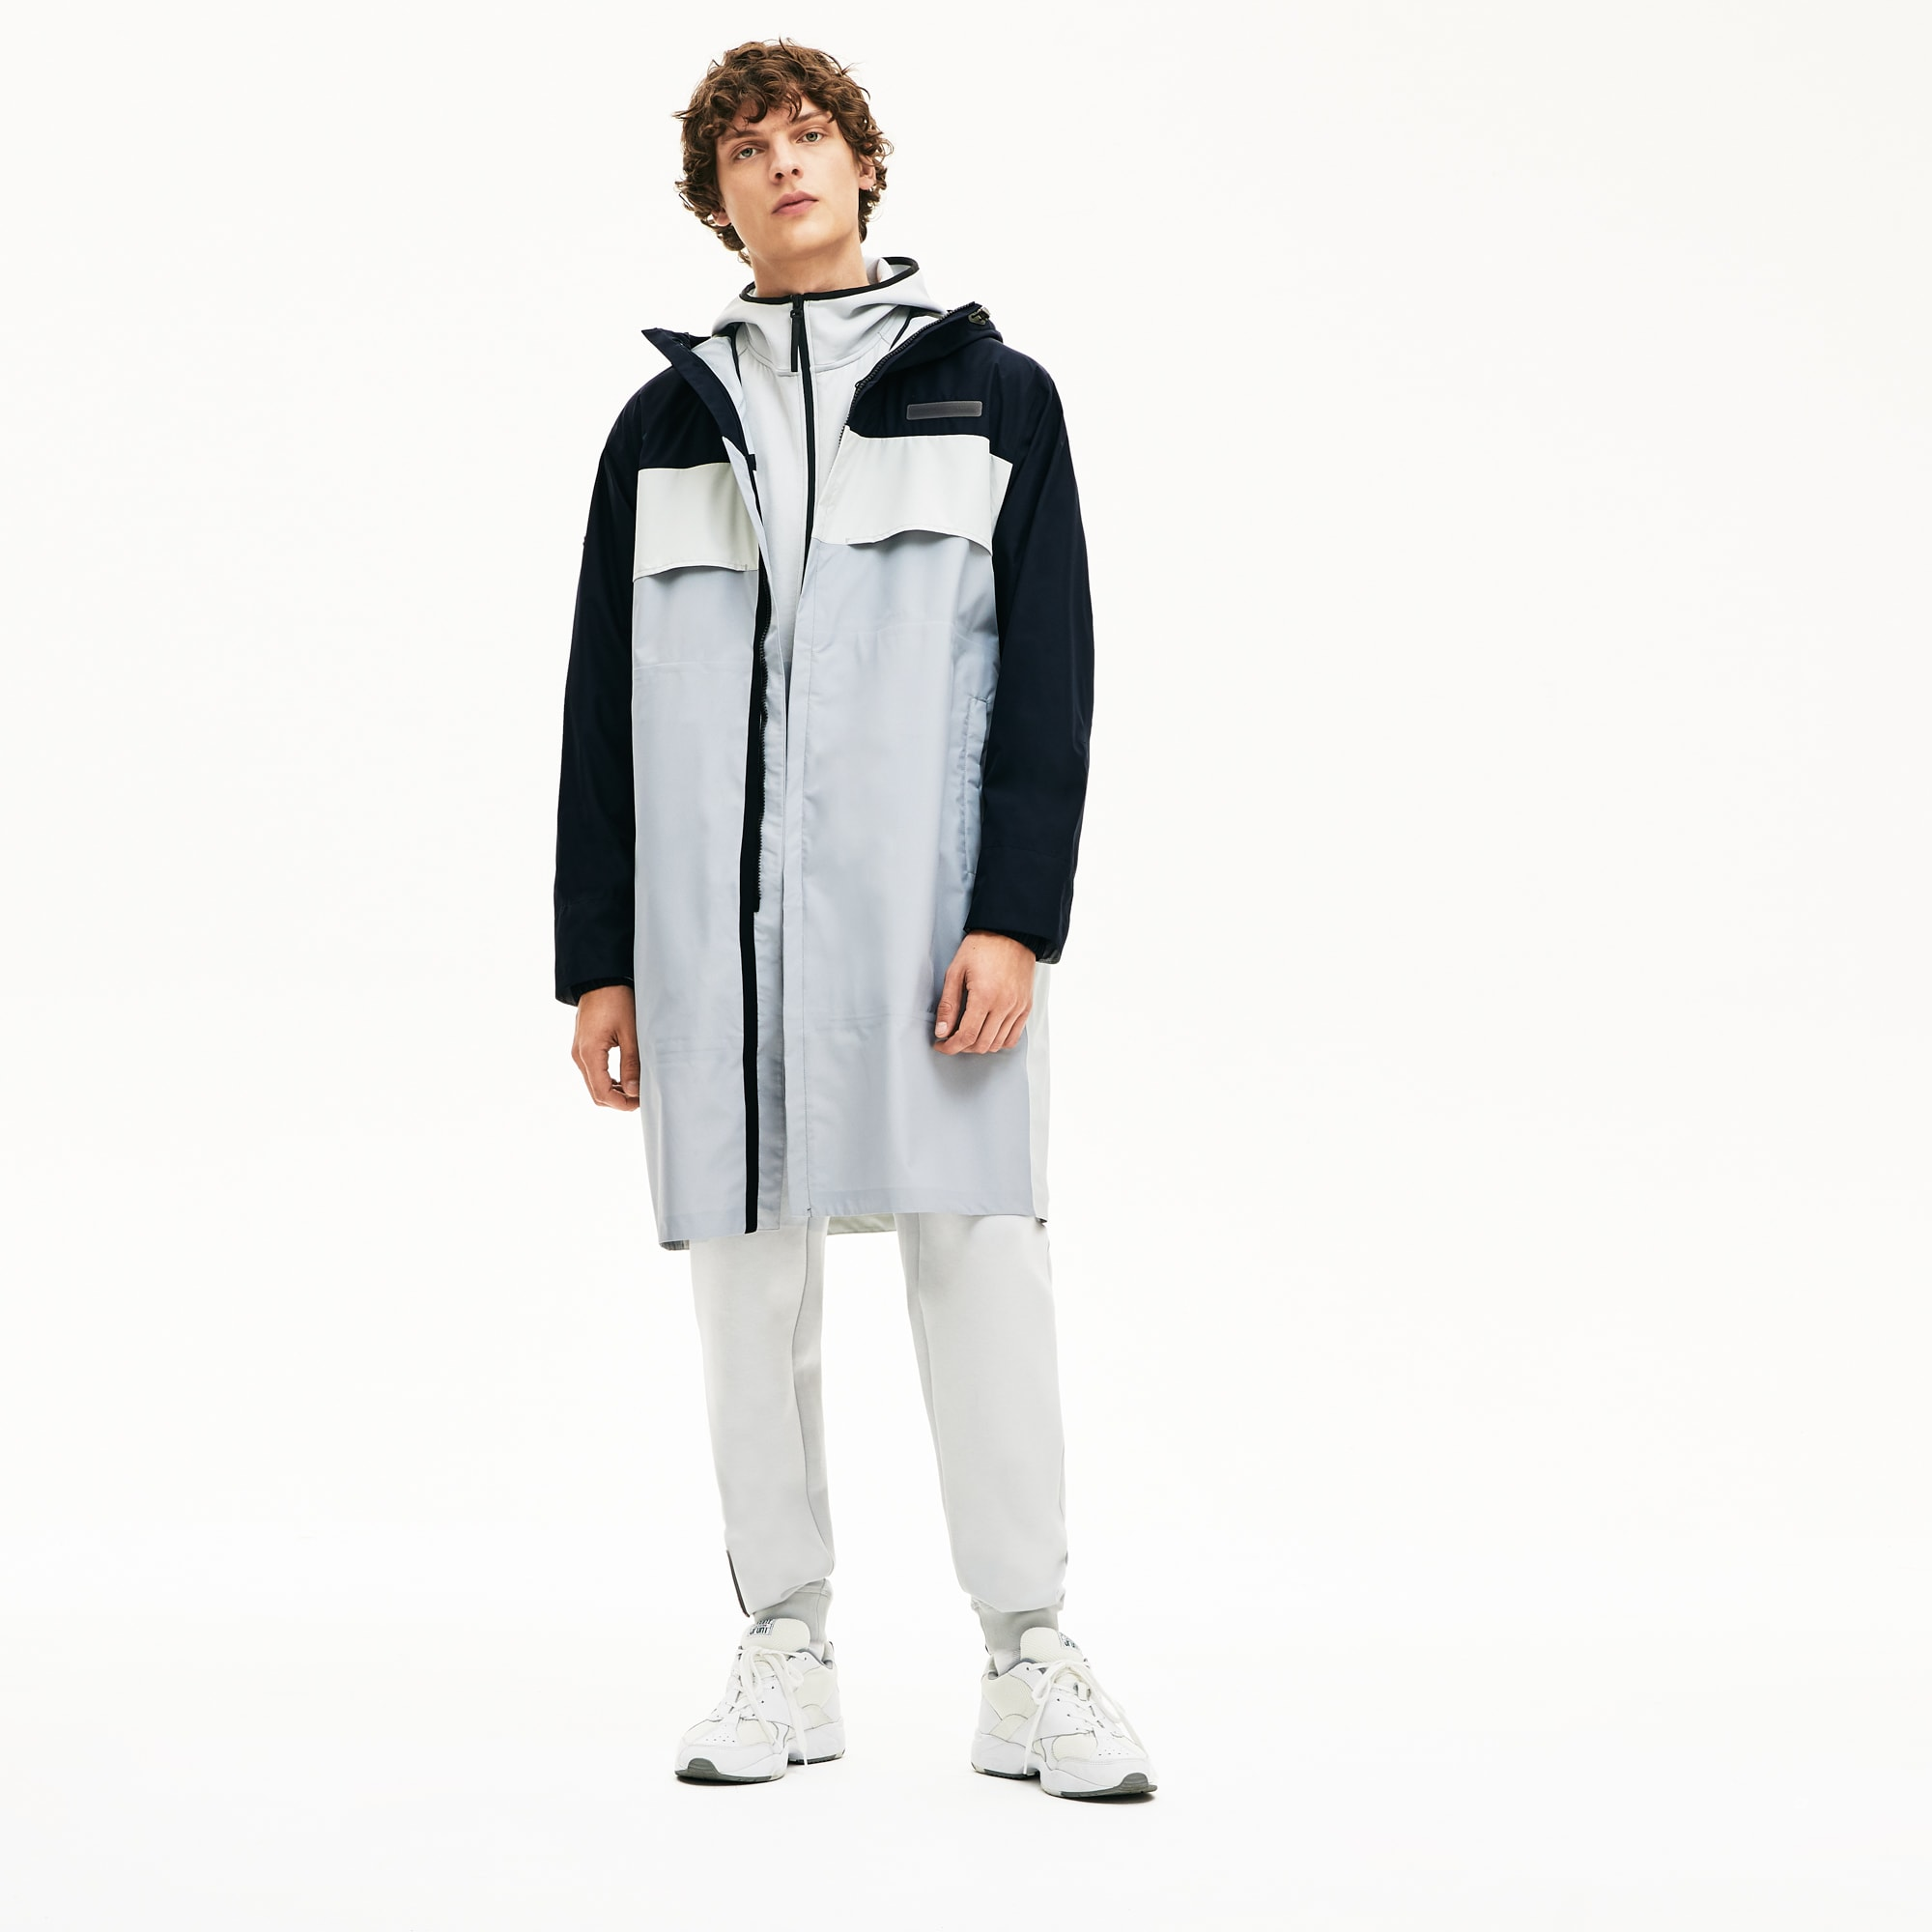 Lacoste Coats Men's Motion Packable Crease-Proof Parka